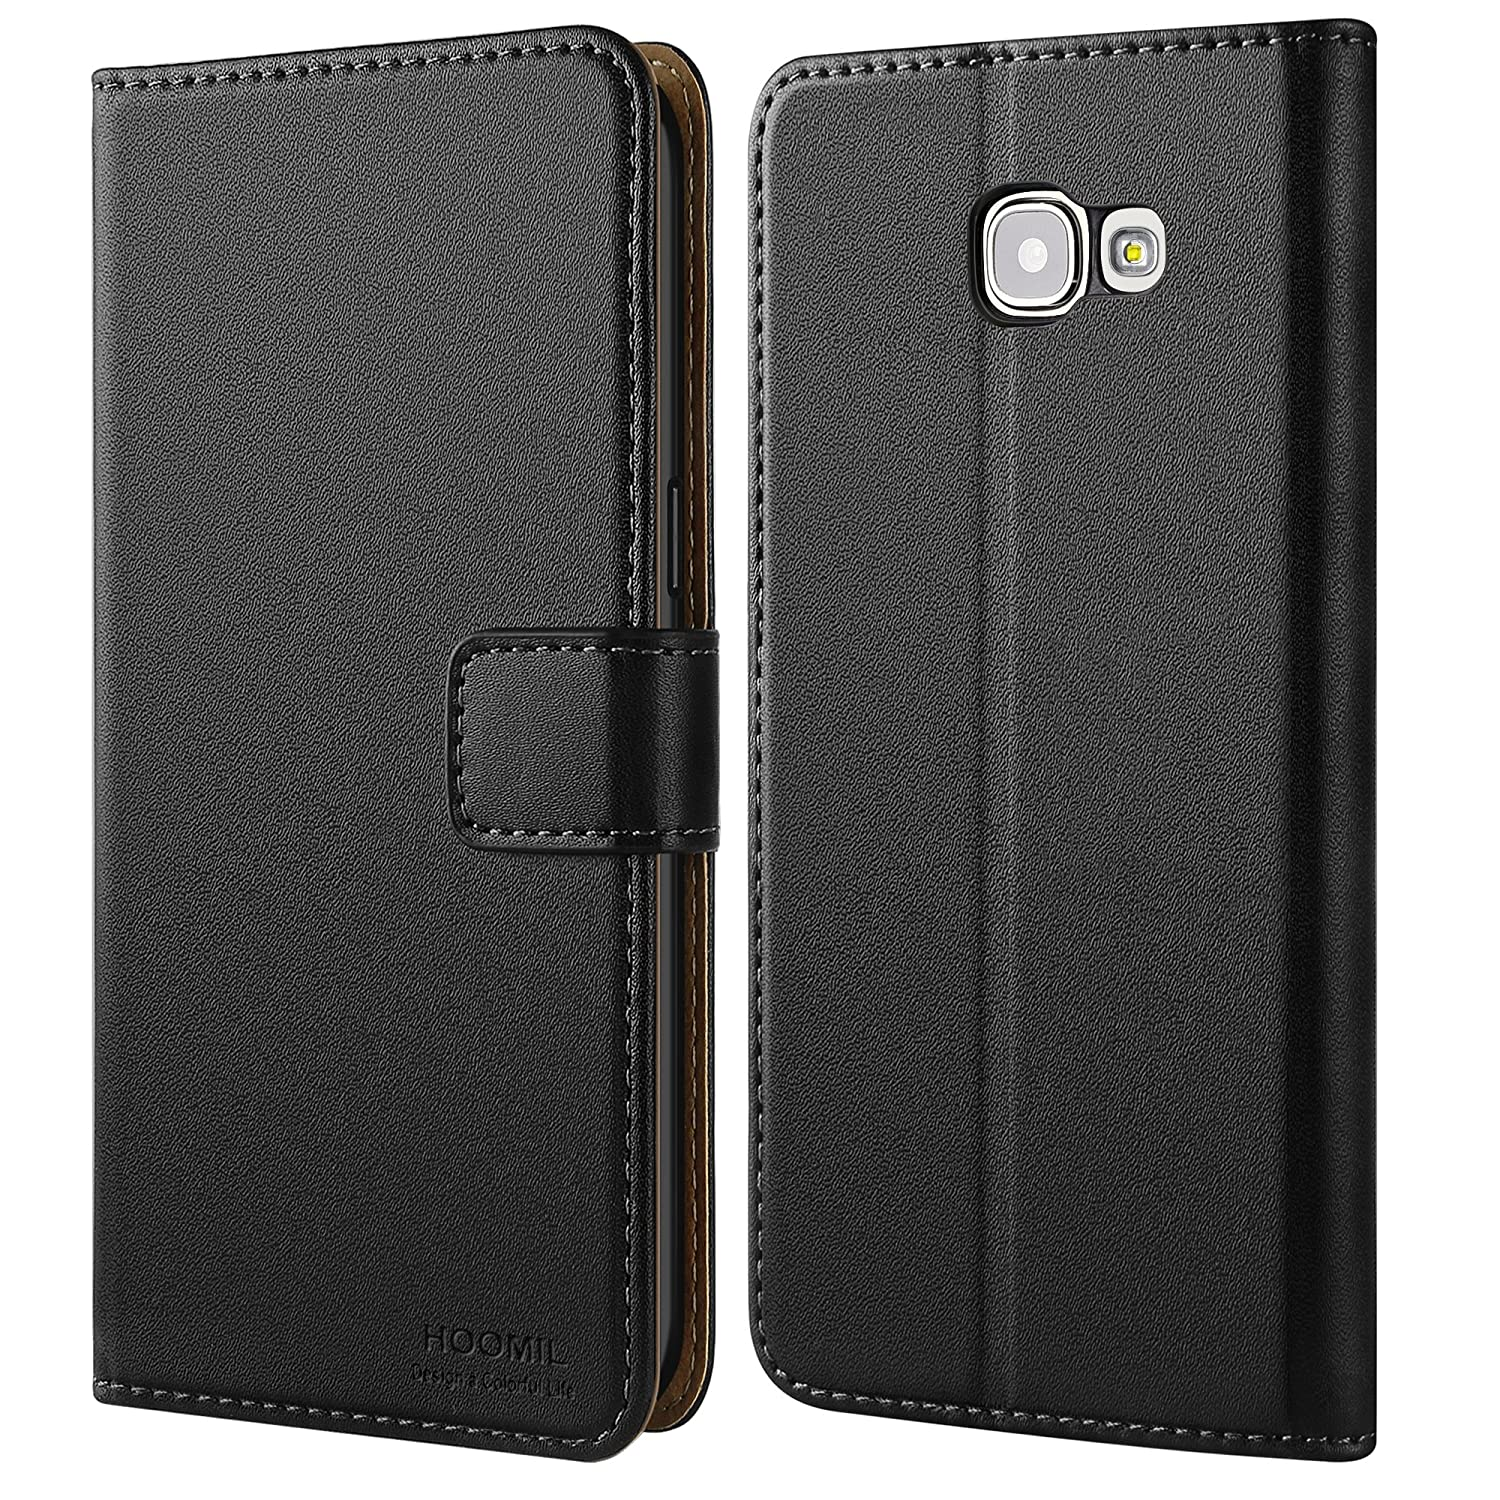 half off 26a86 cfb73 HOOMIL Case Compatible with Samsung Galaxy A5 2016, Premium Leather Flip  Wallet Phone Case for Samsung Galaxy A5 2016 Cover (Black)